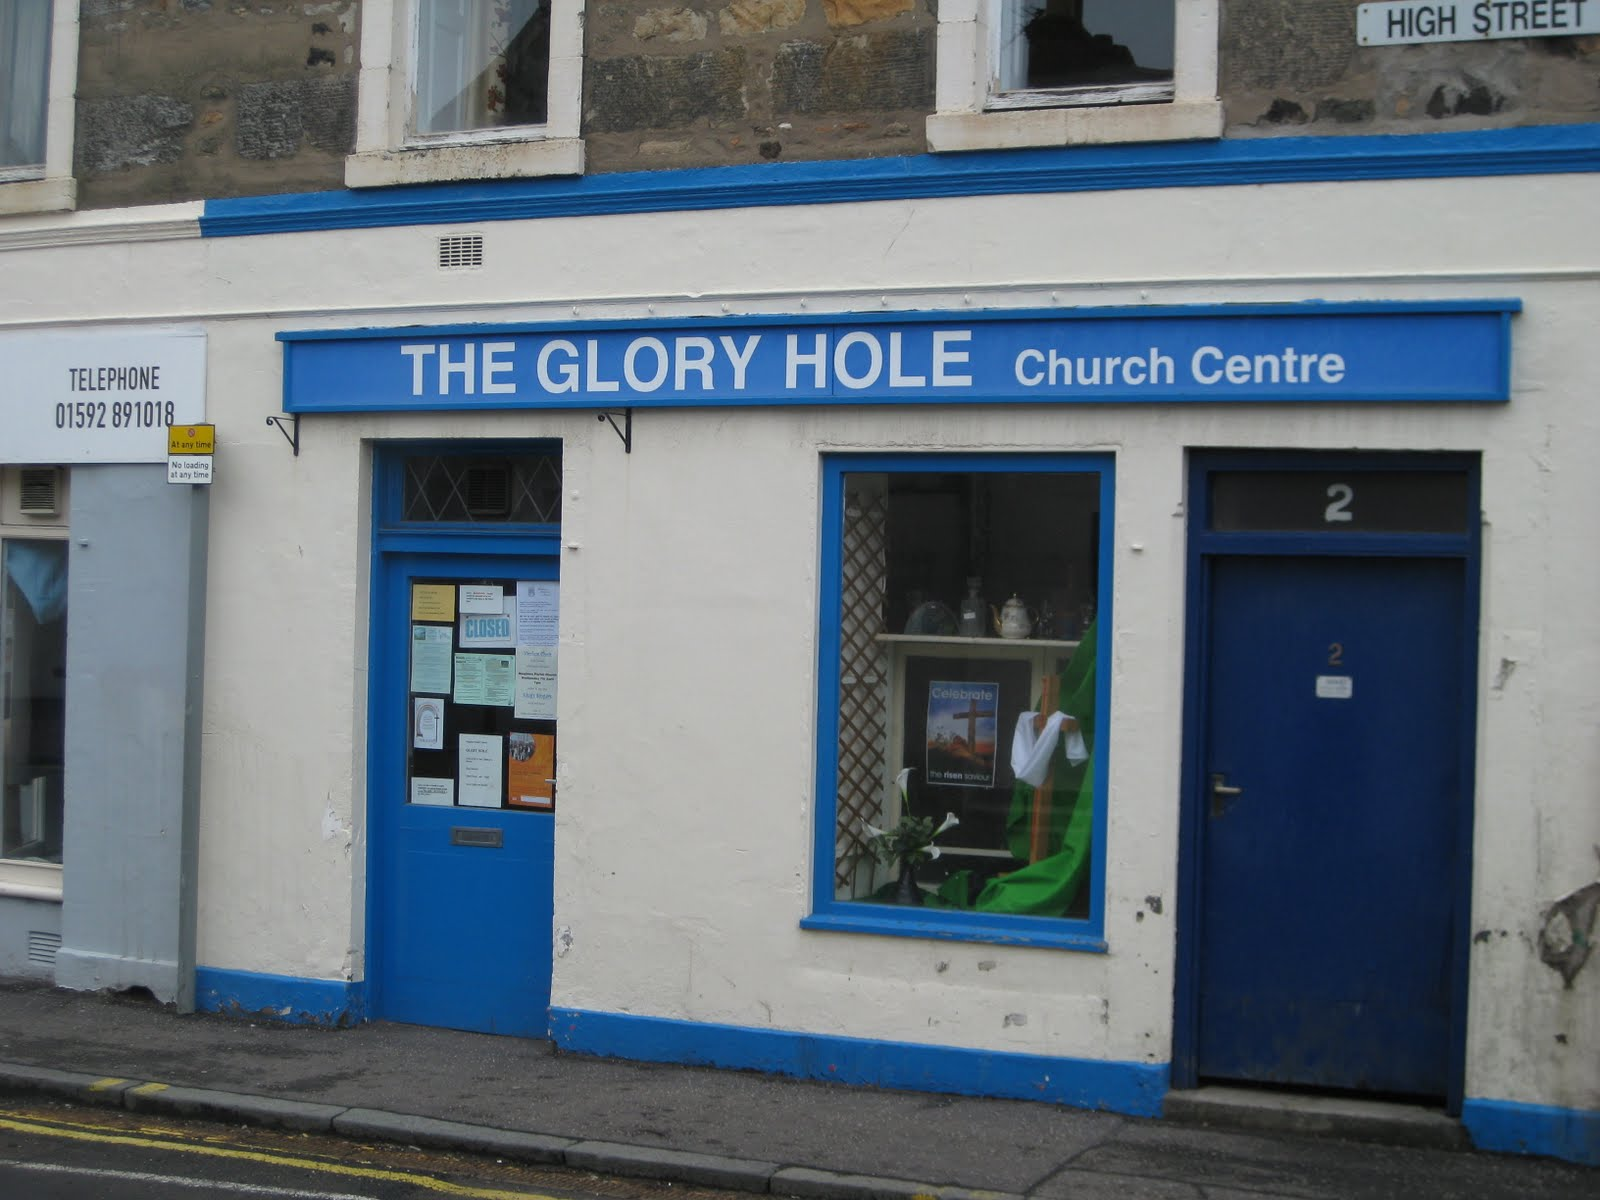 """If you don't know what a """"Glory Hole"""" is, do NOT look it up at work"""